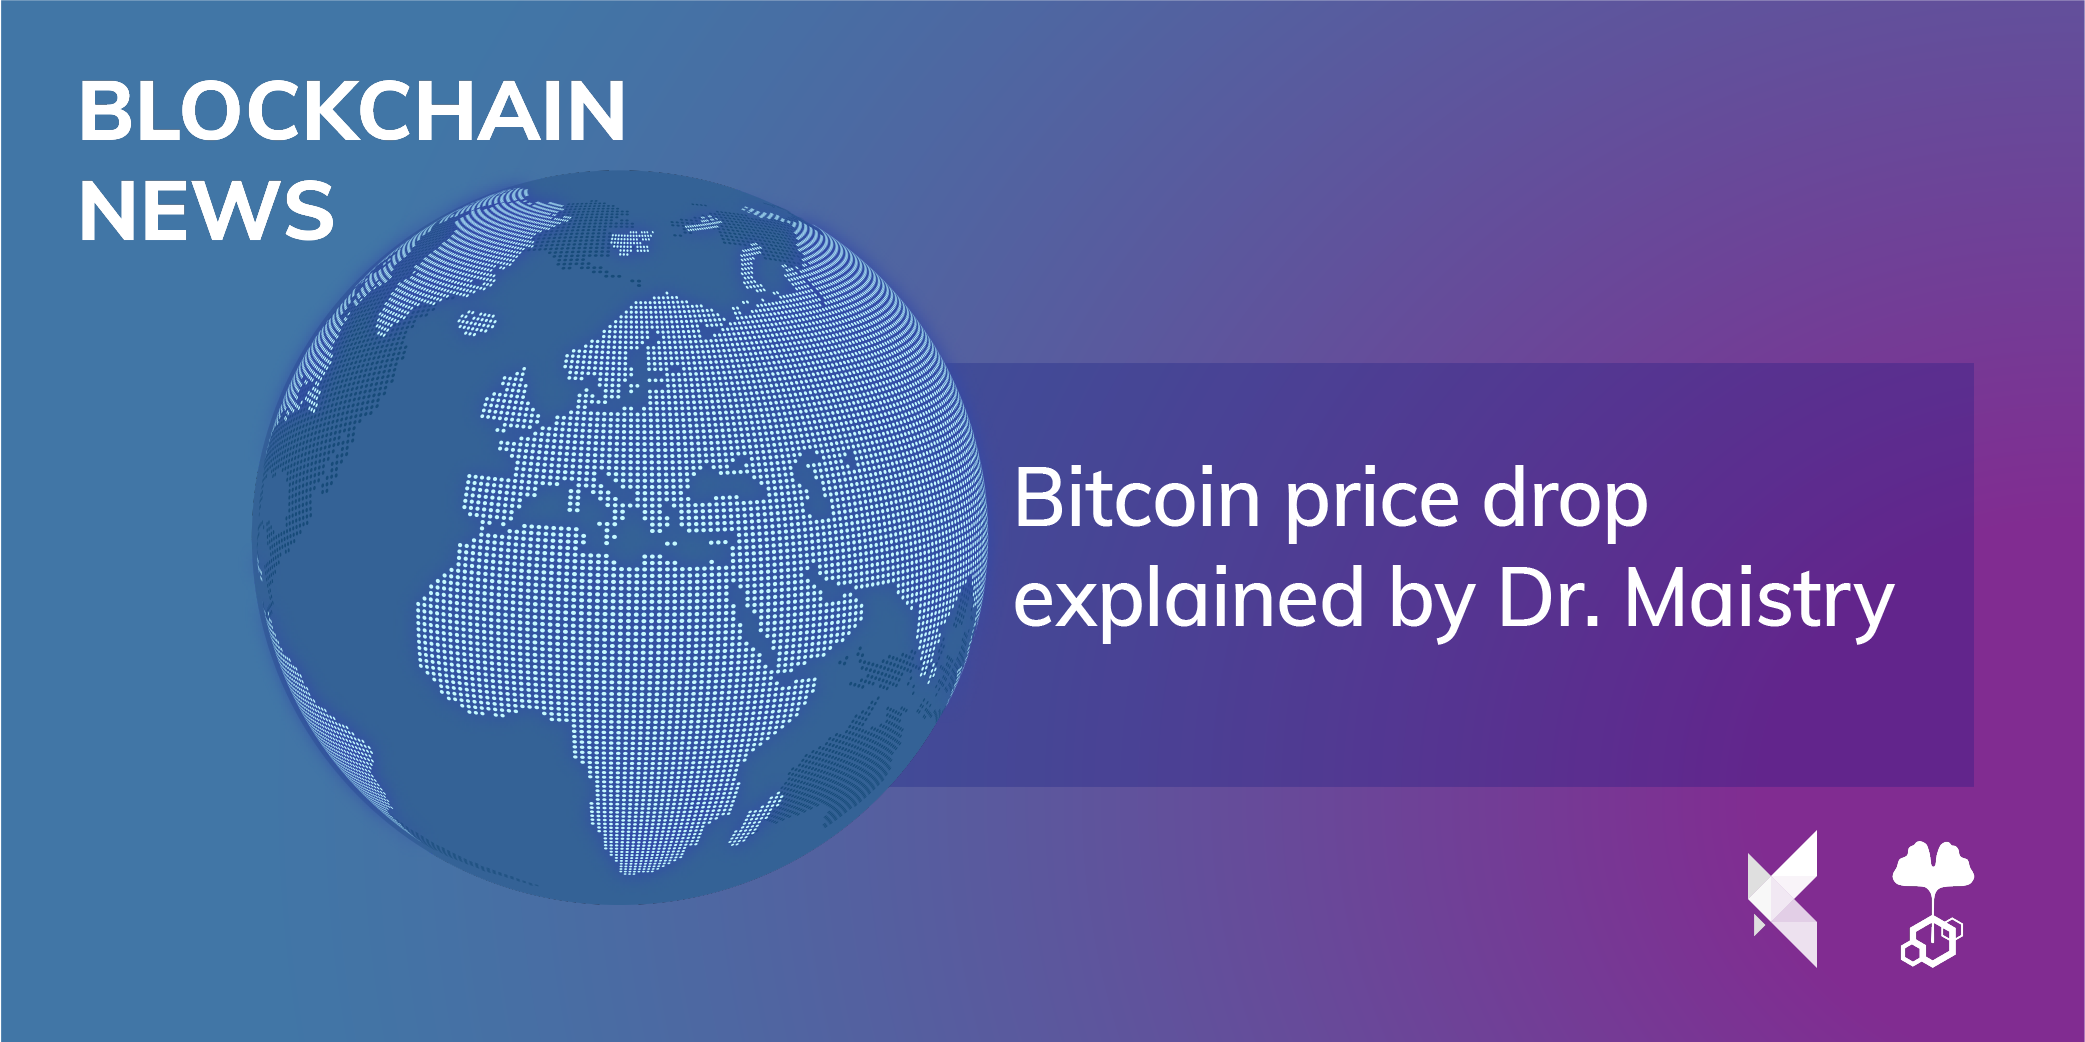 Bitcoin price drop explained